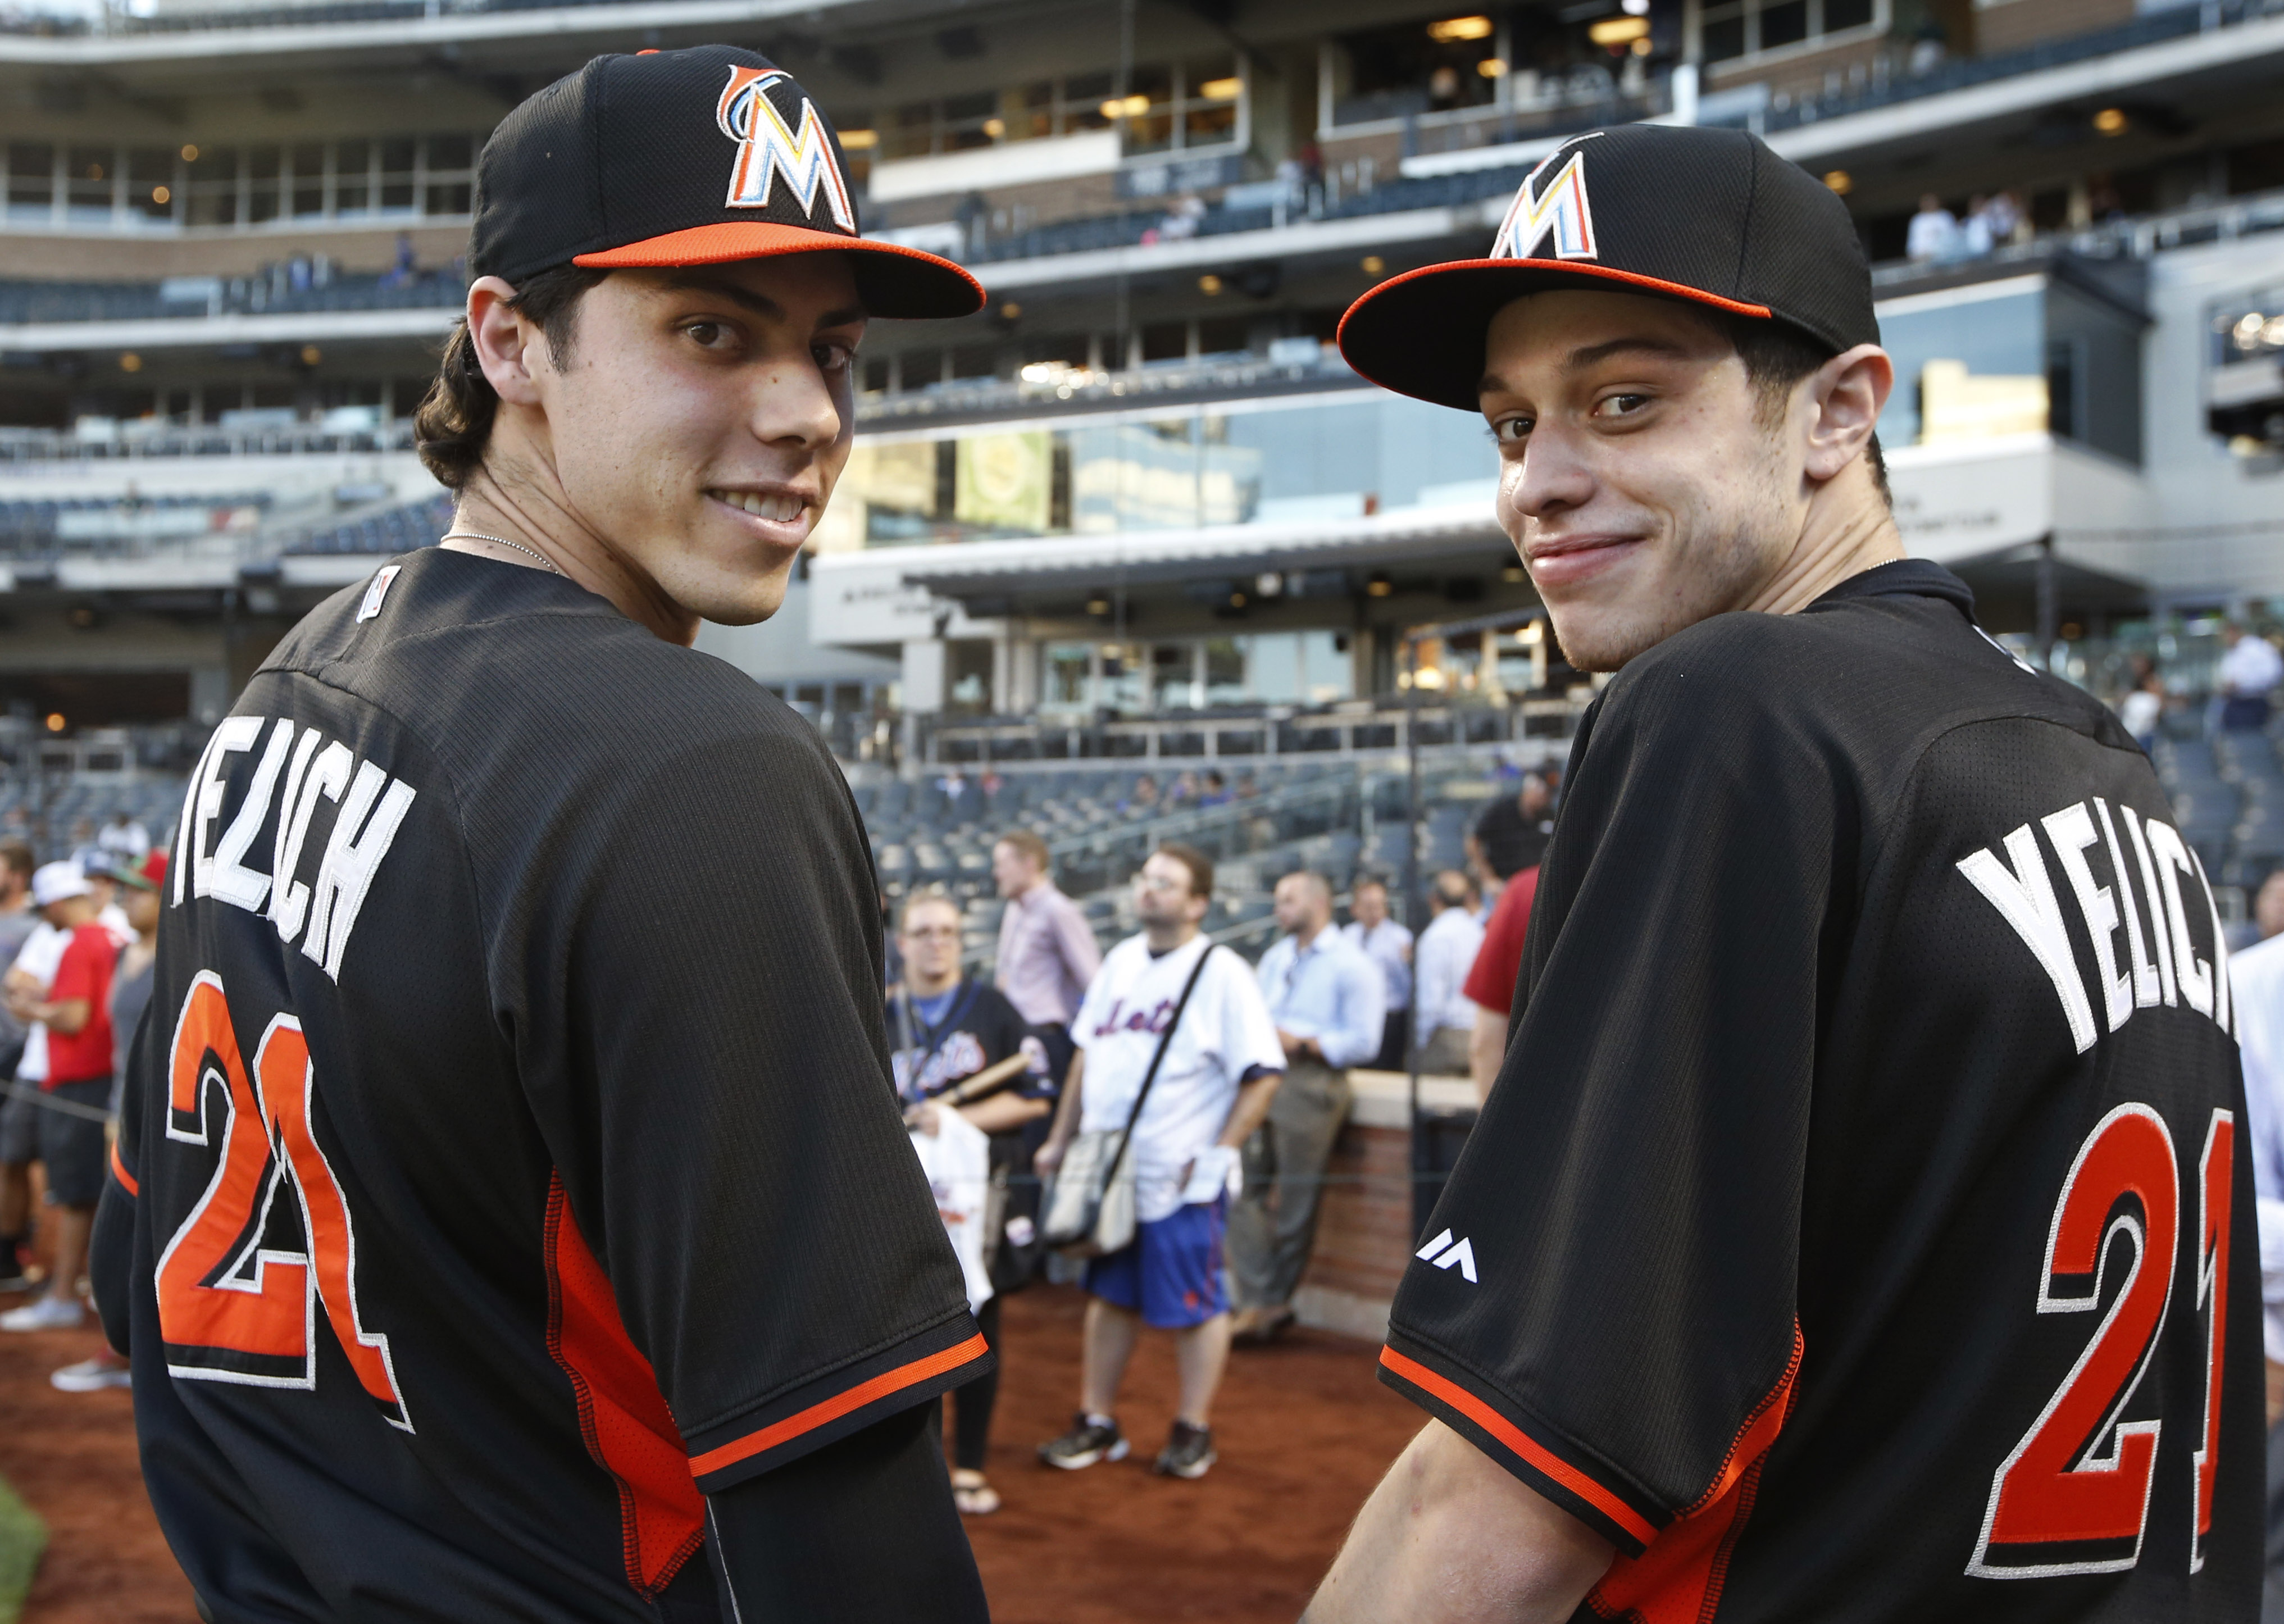 Miami Marlins' Christian Yelich, left, poses for a photograph with Saturday Night Live comedian Pete Davidson before a baseball game between the Marlins and the New York Mets, Tuesday, Sept. 15, 2015, in New York. (AP Photo/Kathy Willens)